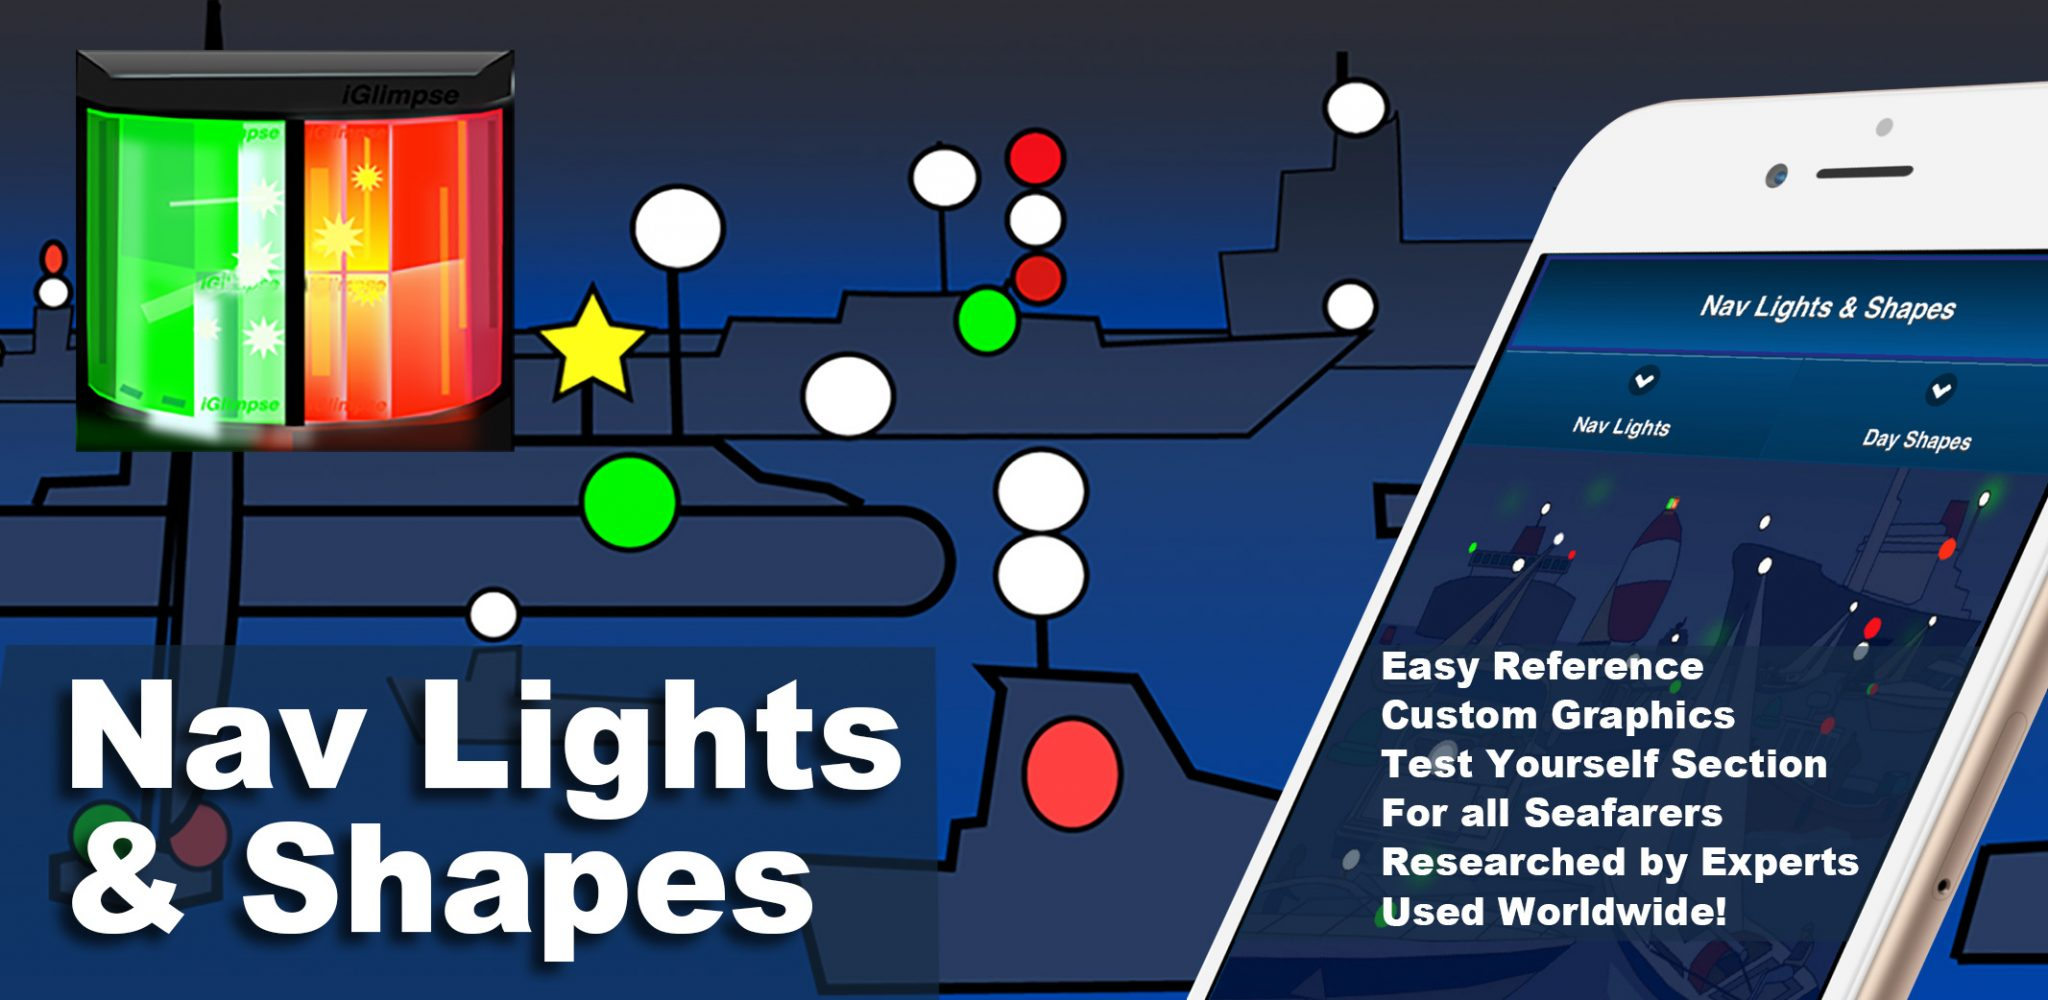 "Colregs: Nav Lights & Shapes App provides skippers and crew of recreational and commercial vessels with a quick reference tool to help them identify vessels in their vicinity and the activities they are engaged in, as specified in Part C: ""Lights and Shapes"" (Rules 20-31) of the International Regulations for Preventing Collisions at Sea (IRPCS) or ColRegs."